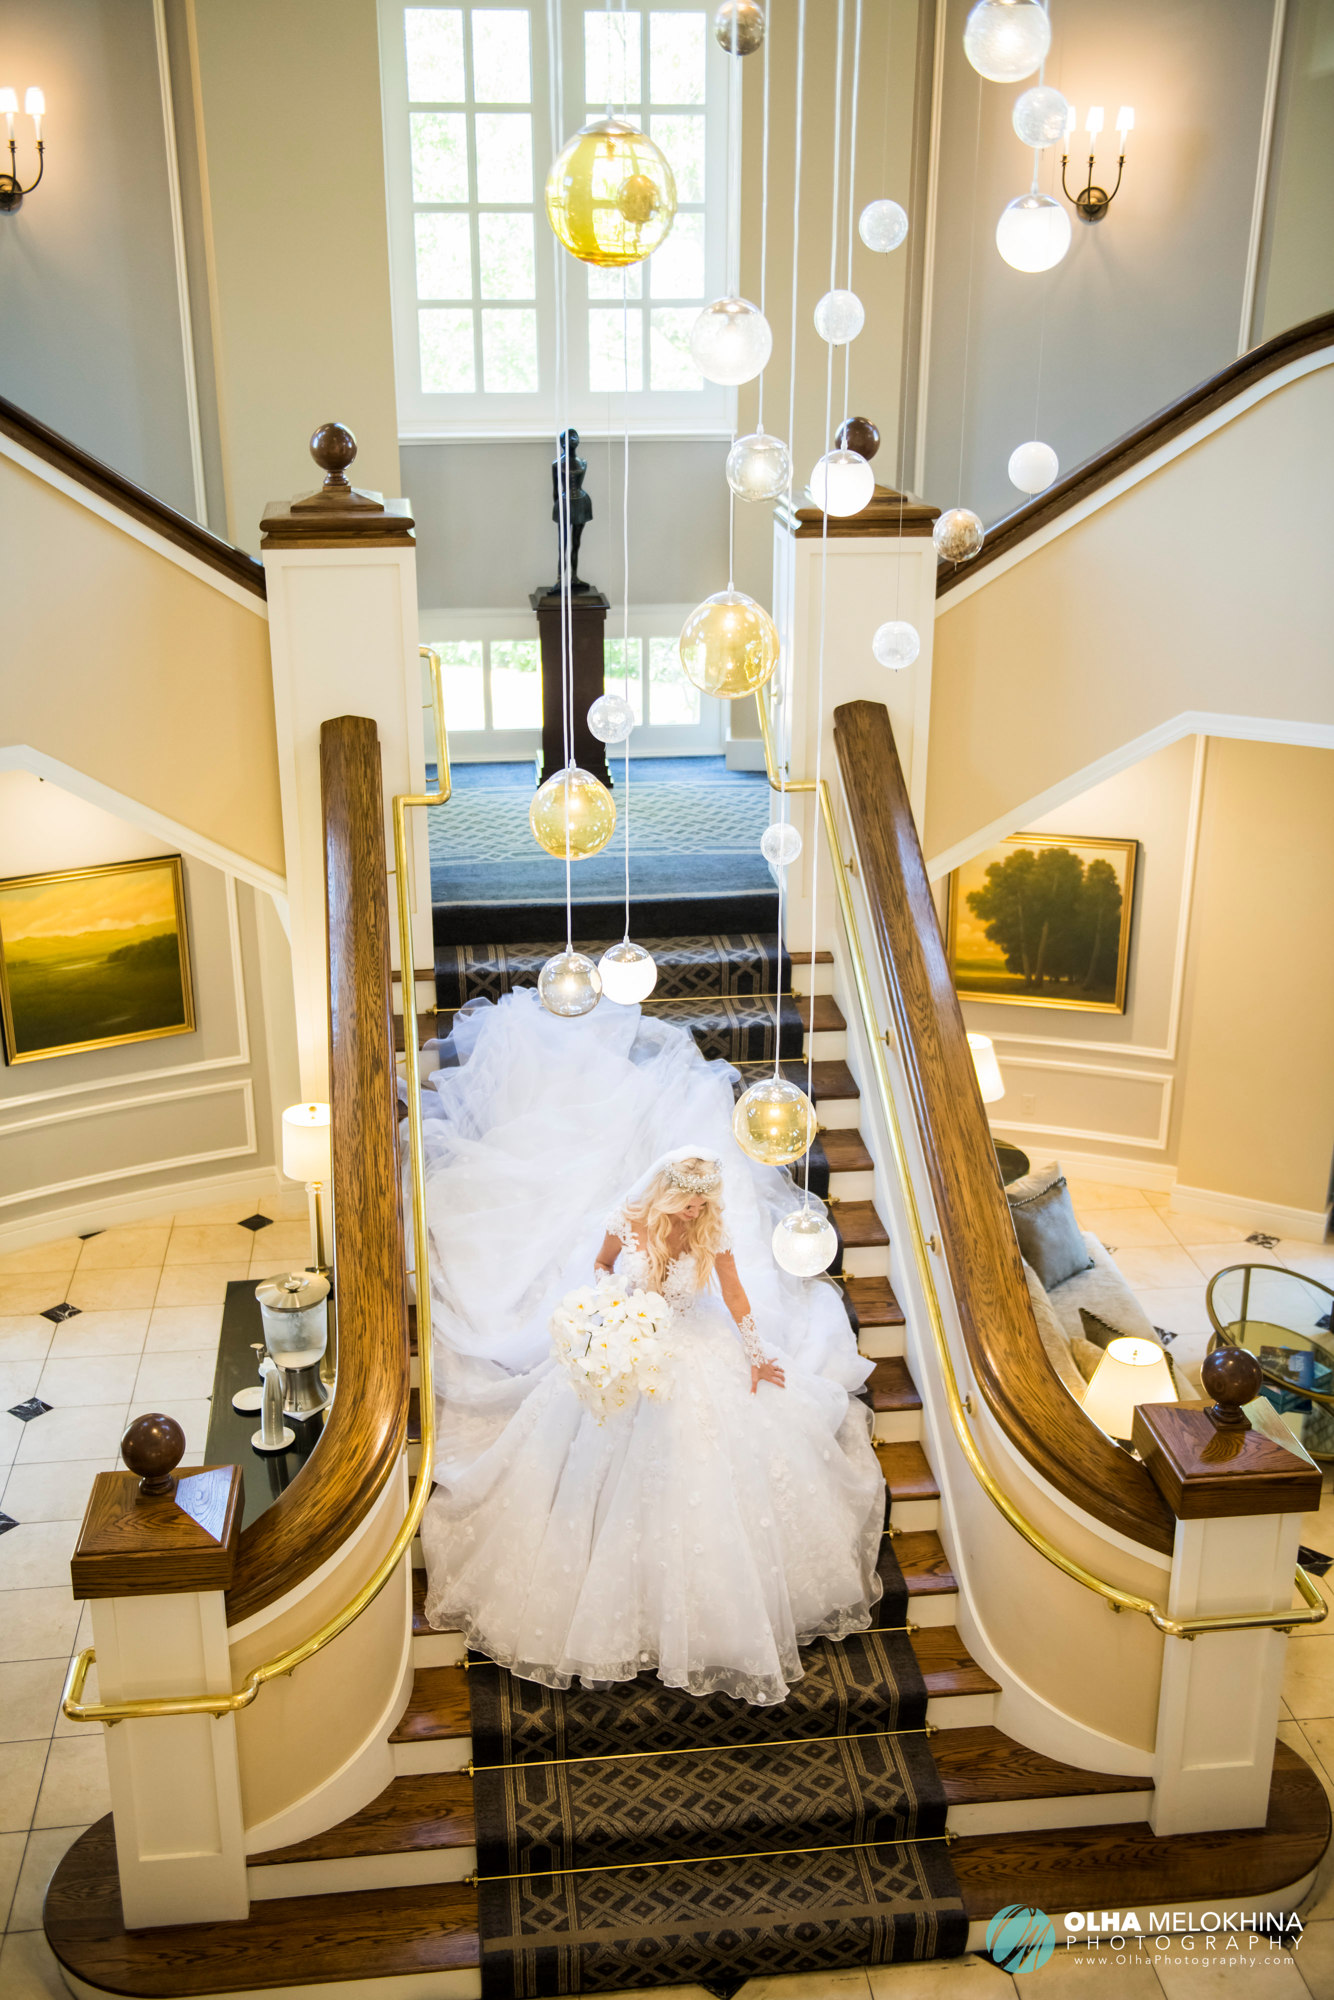 The bride making her way downstairs to take a glimpse at the setup for her big day.